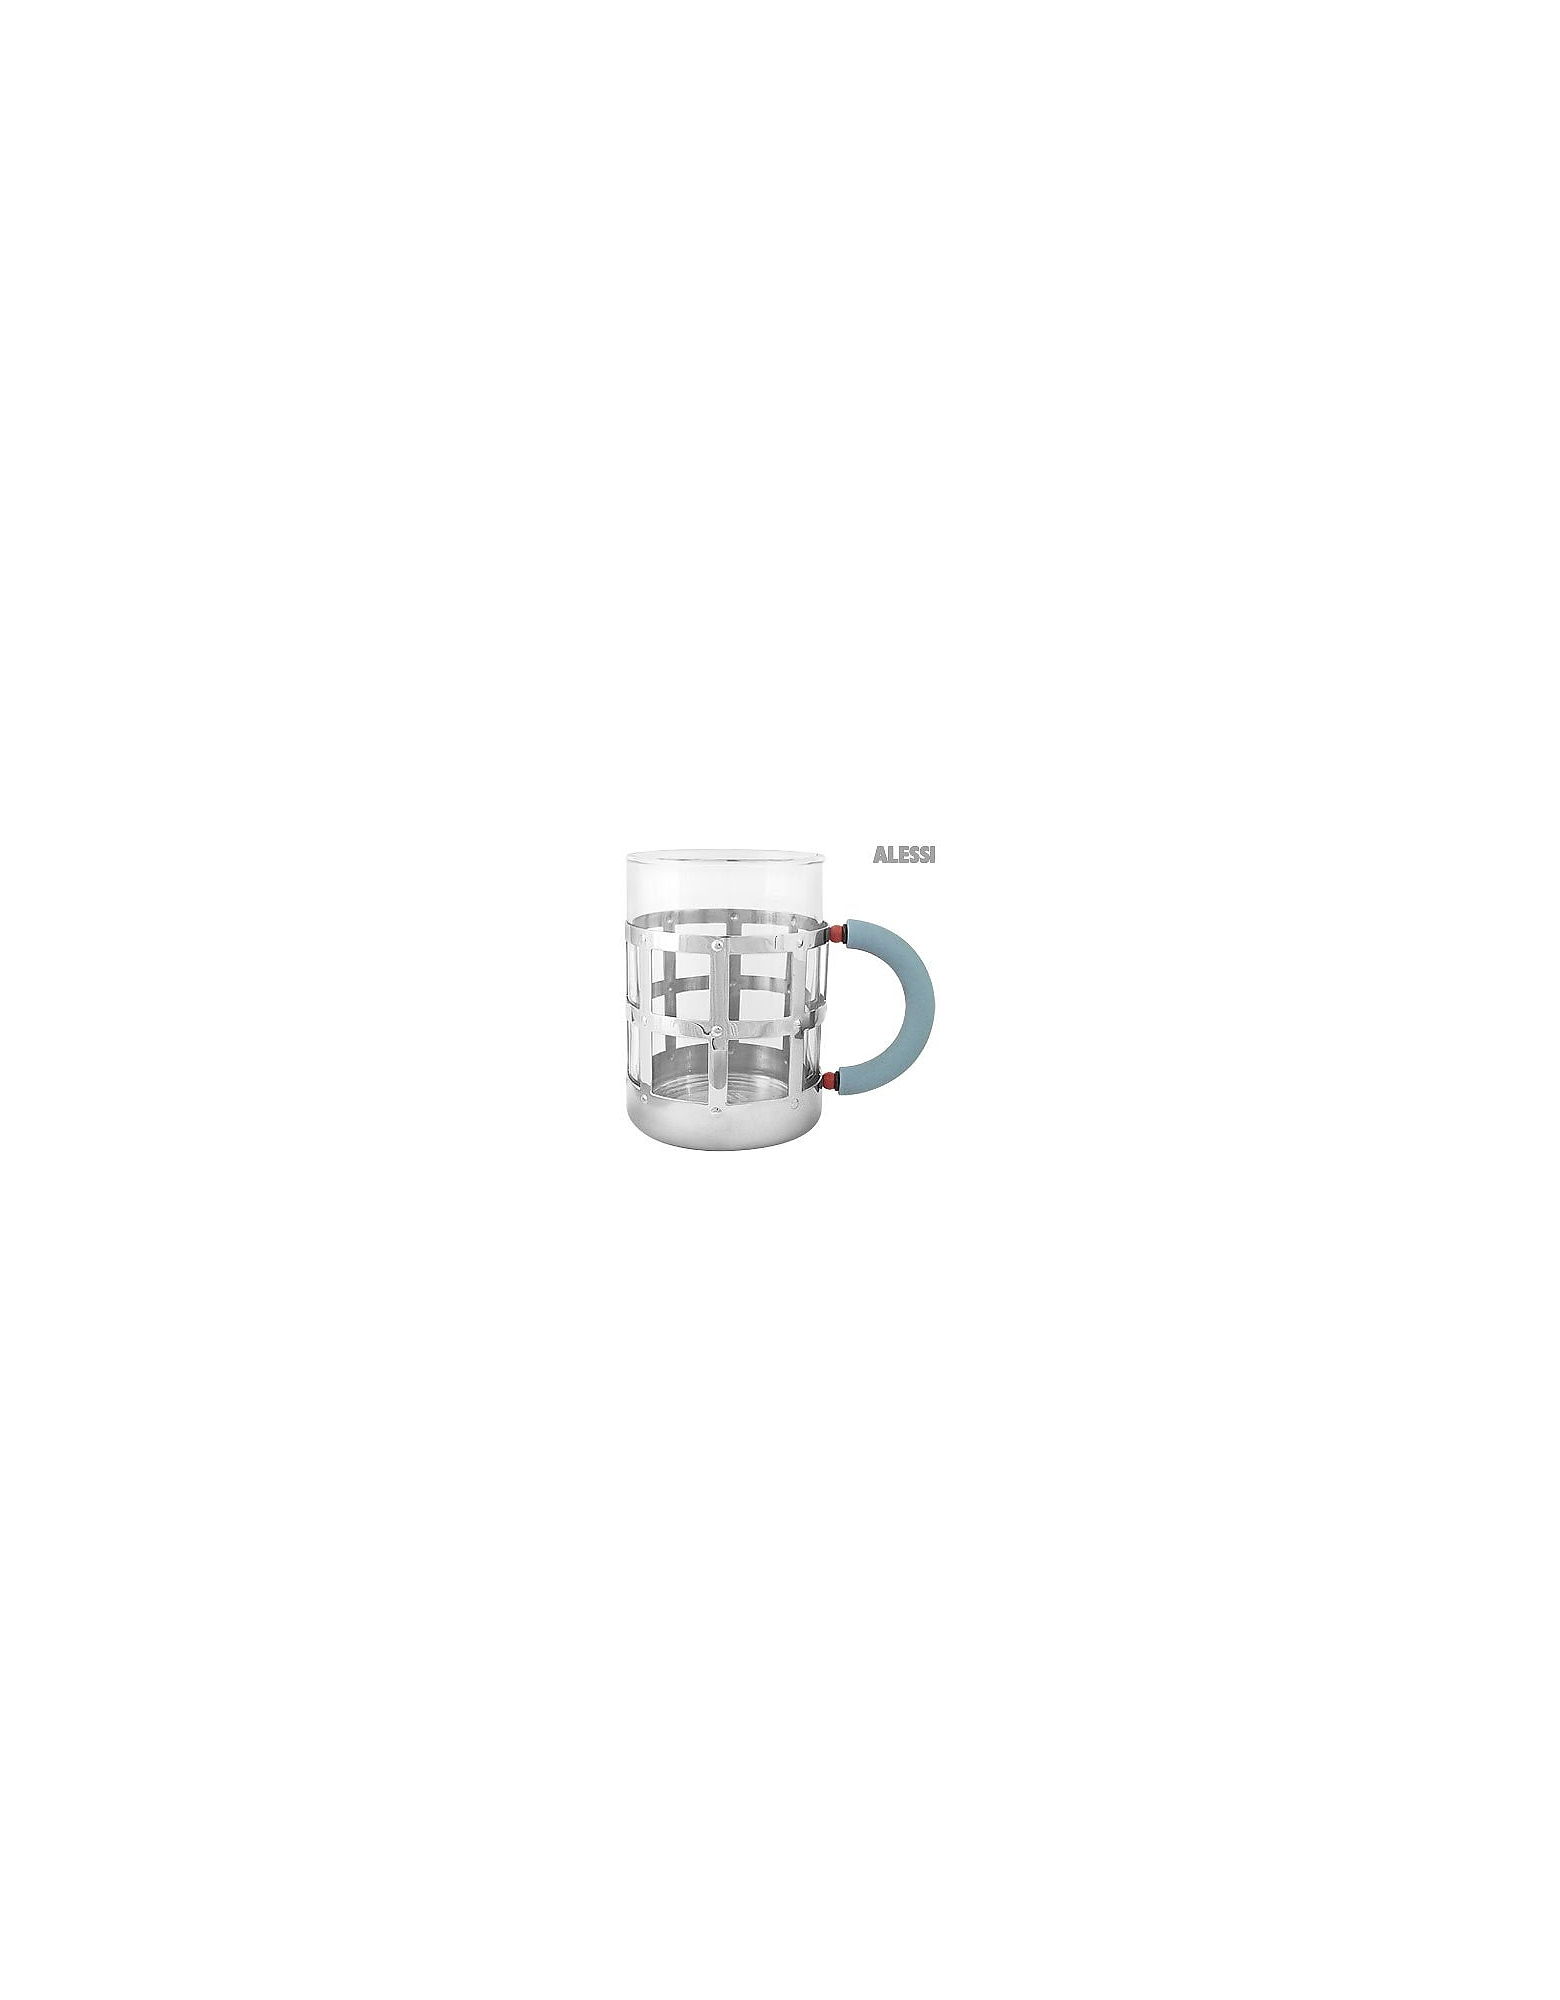 Alessi Designer Kitchen & Dining, Stainless Steel Mug with Blue Handle